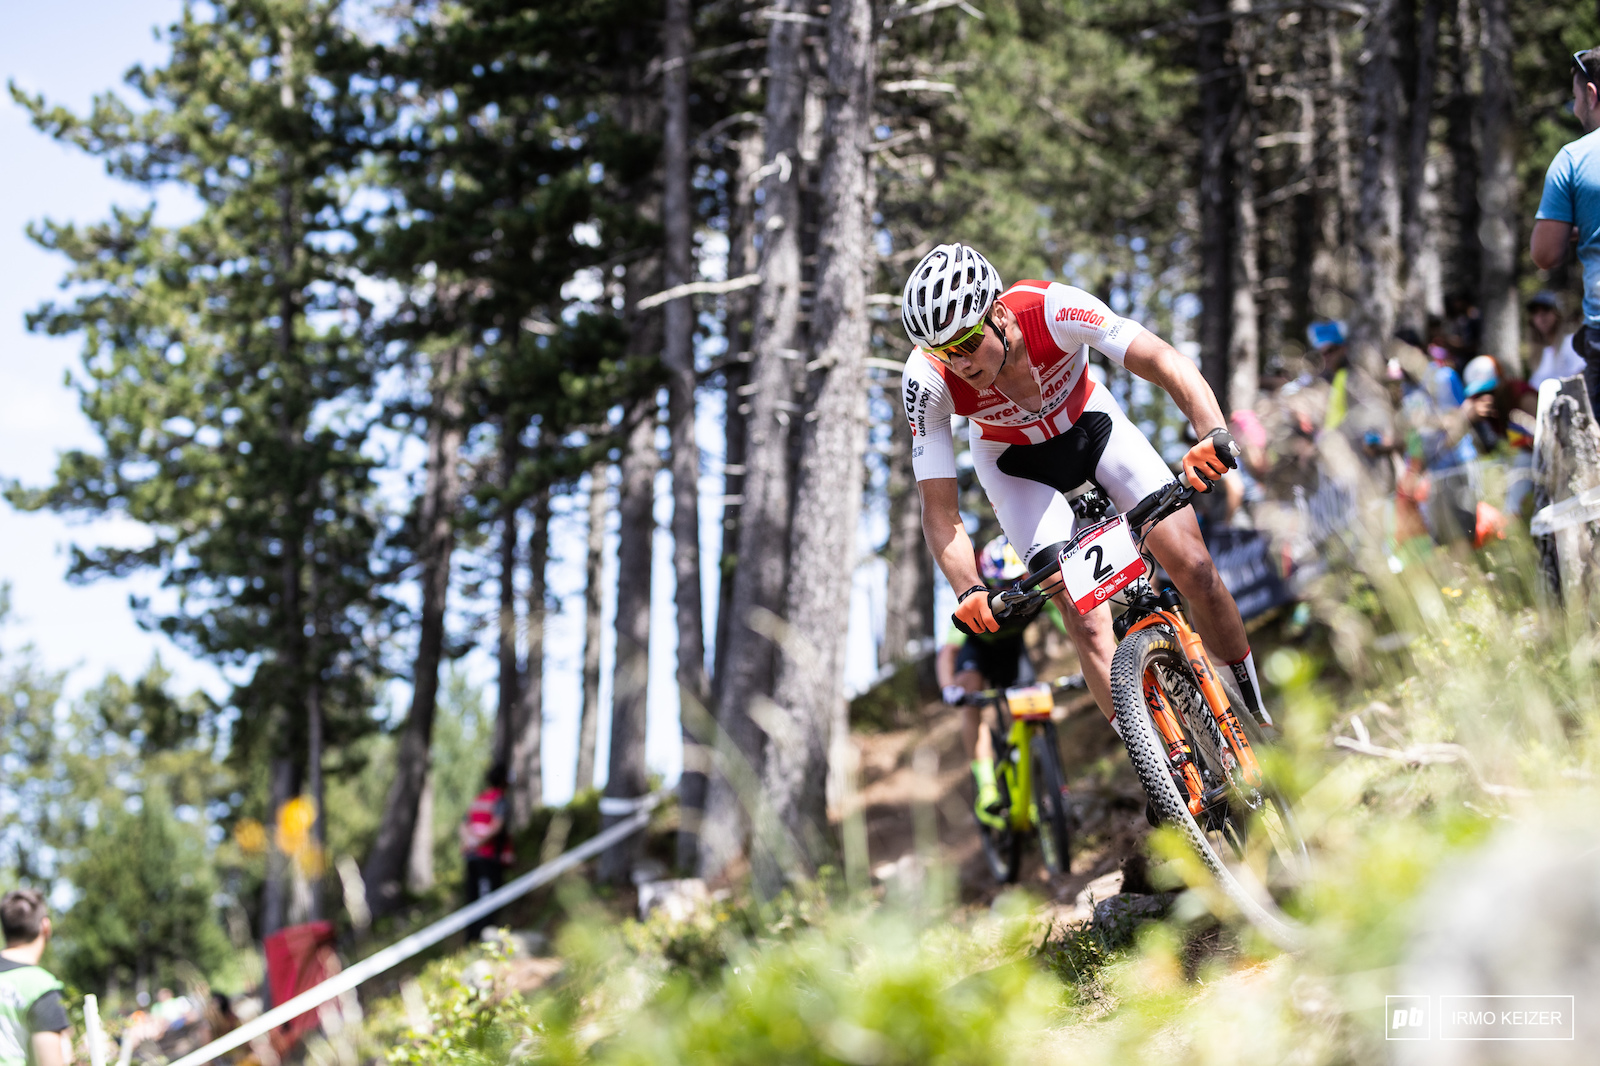 Mathieu van der Poel second in the overall did not come close to challenging Schurter or Kerschbaumer today. Riding his own pace the Dutchman finished third.